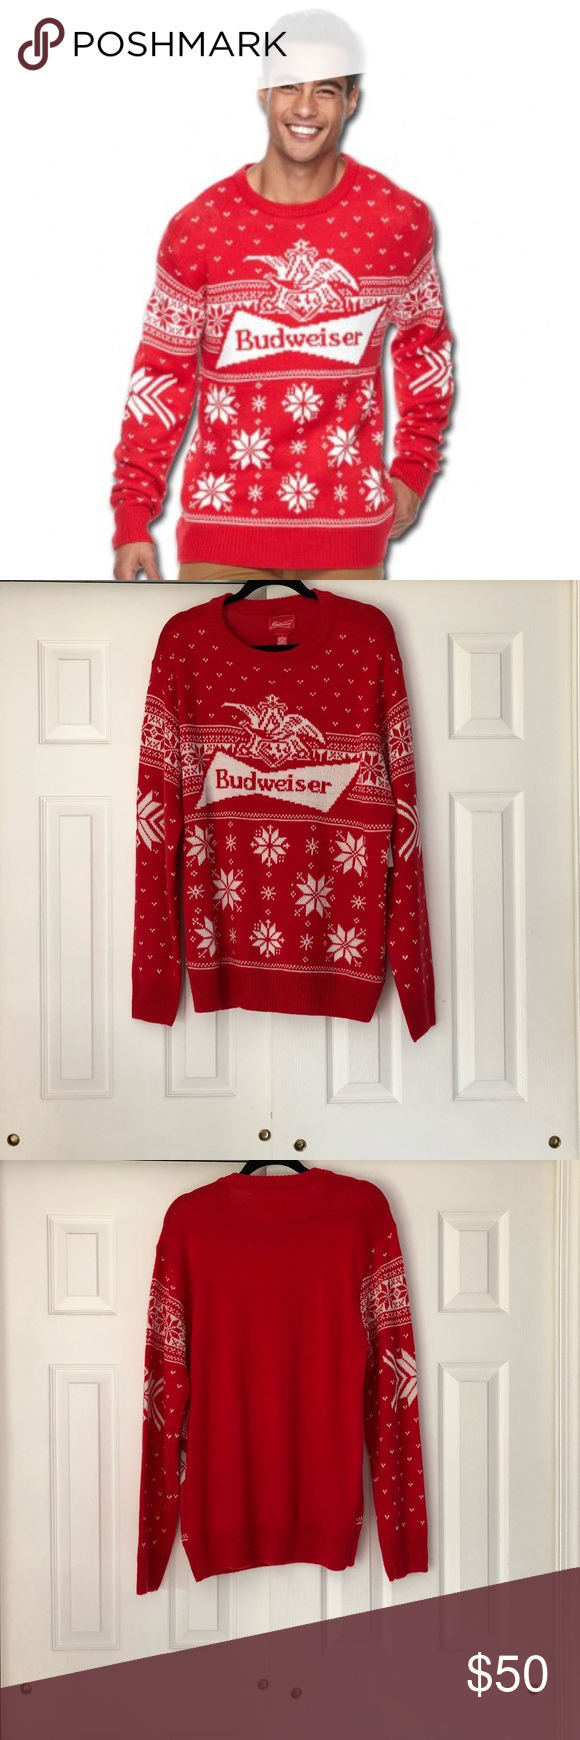 budweiser ugly christmas sweater sz large budweiser ugly christmas sweater in mens size large red and white 100 acrylic budweiser logo and winter